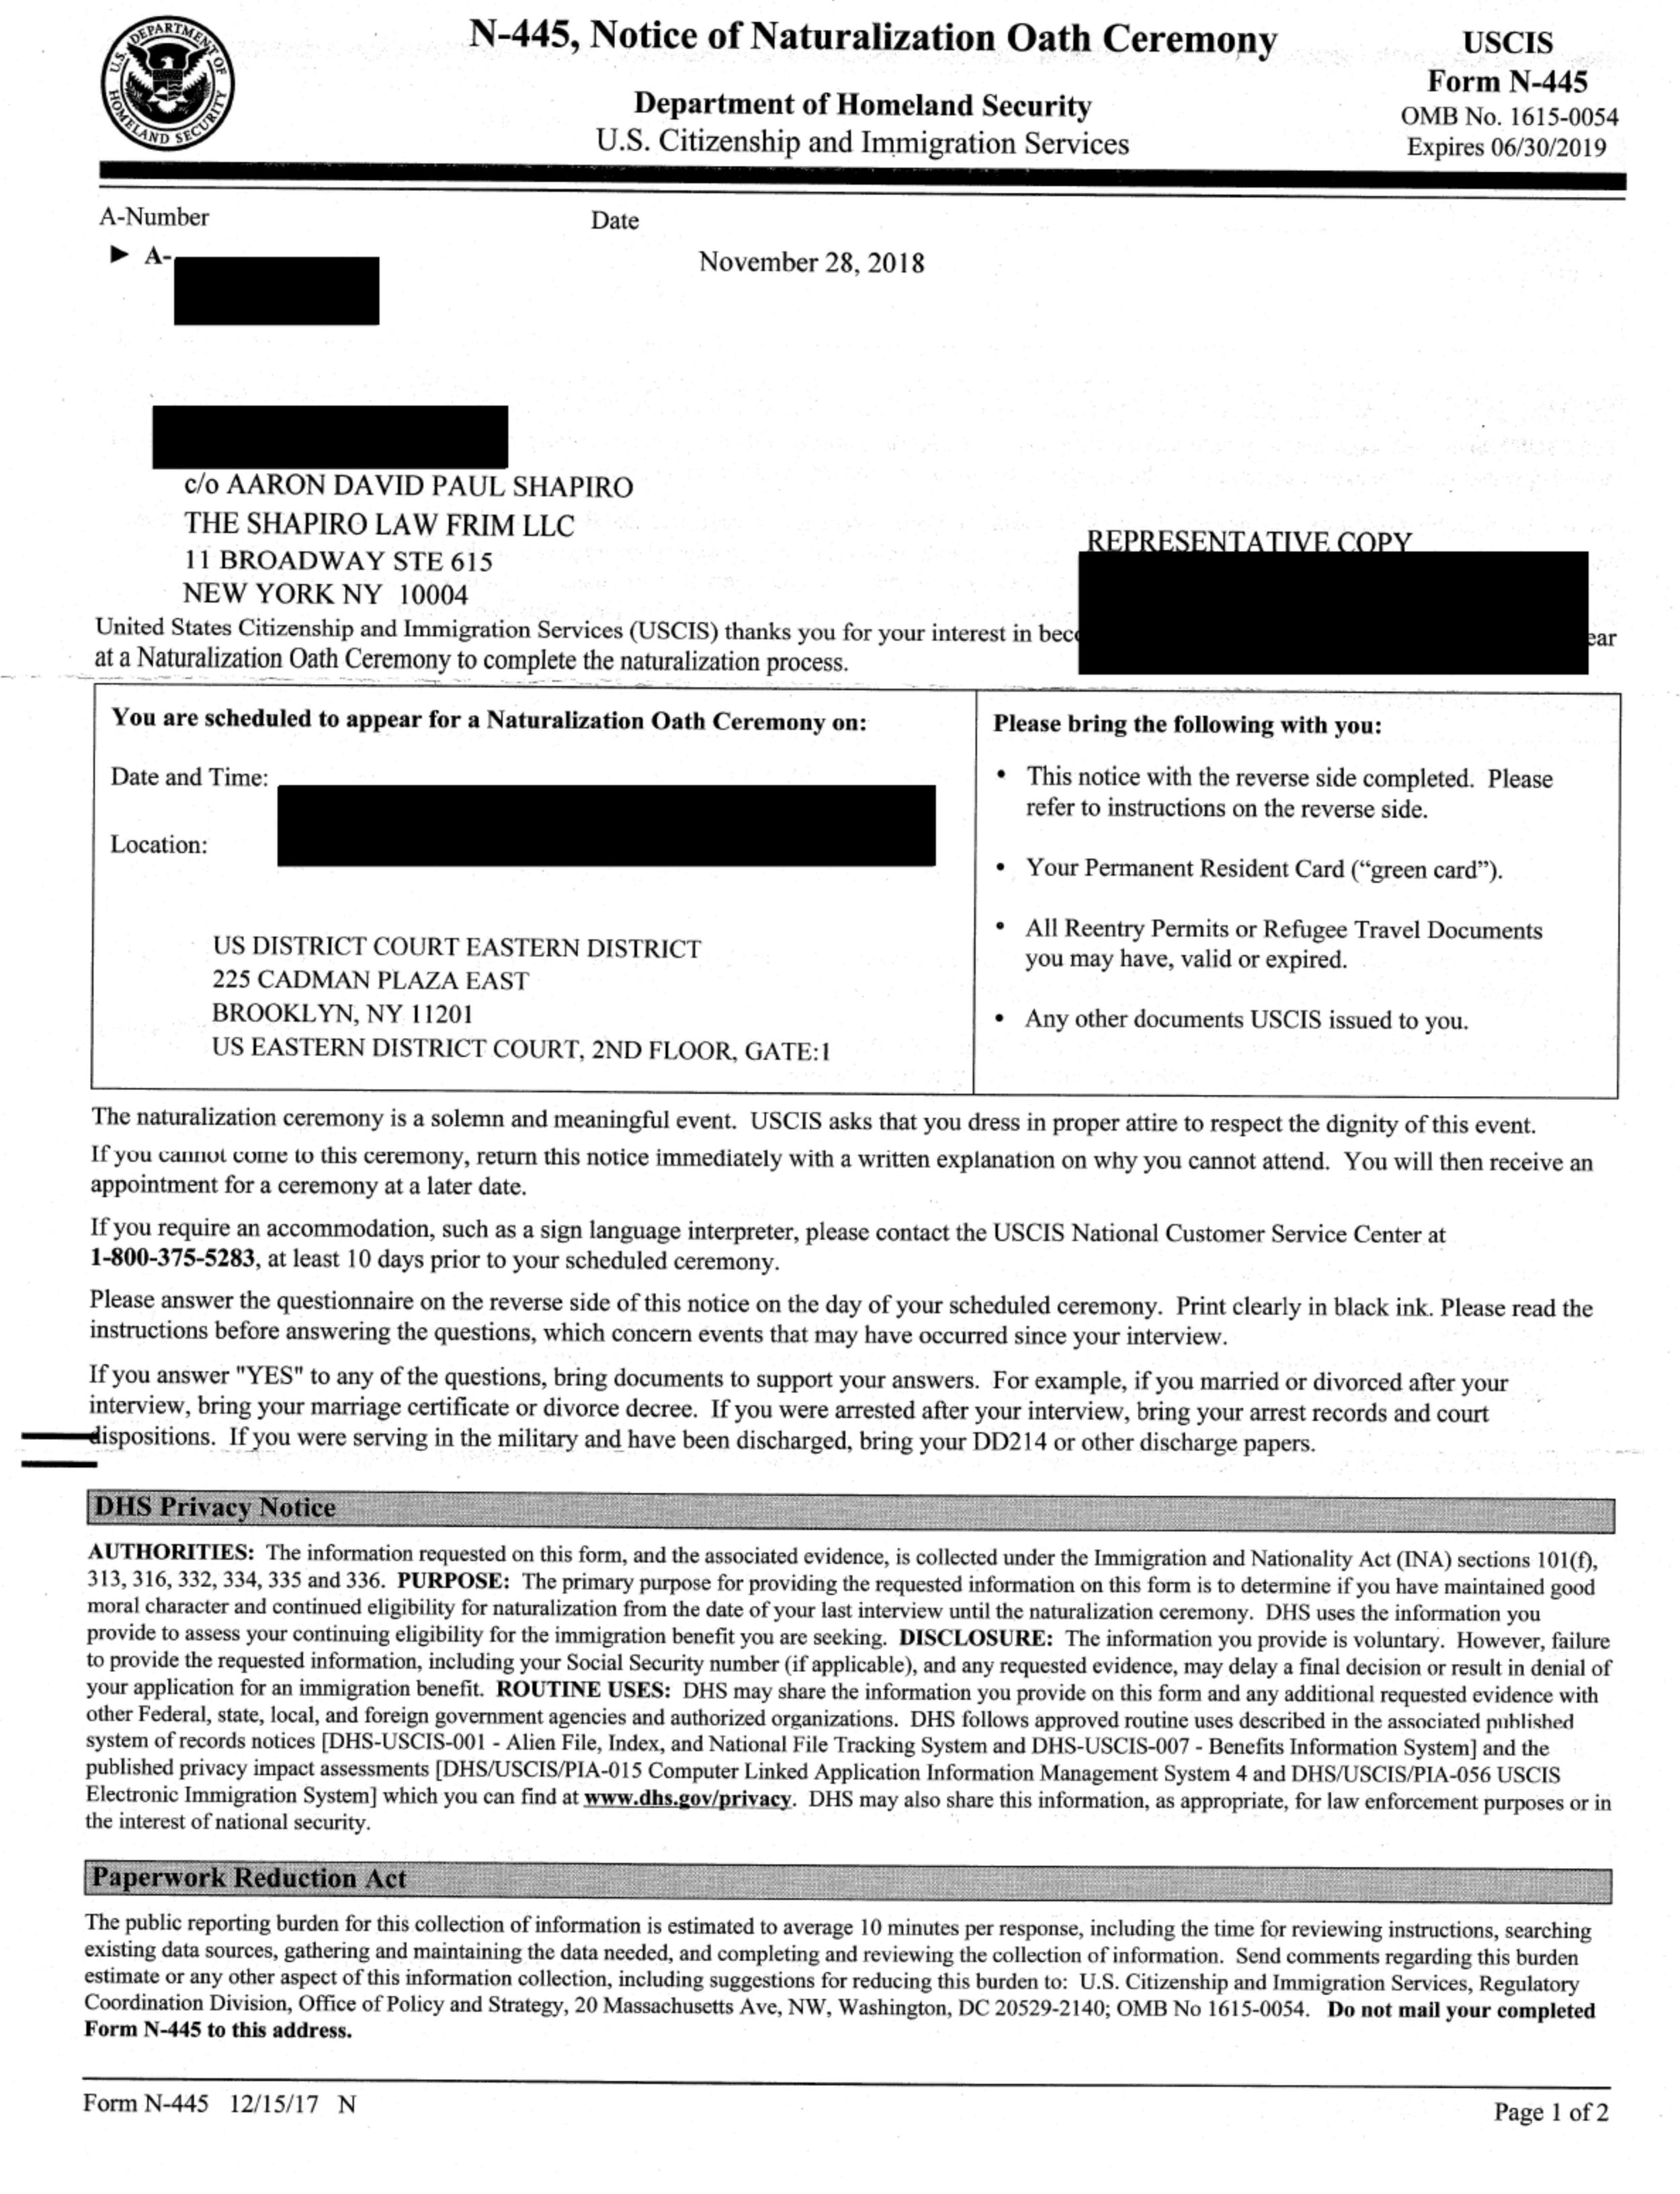 Form N-445, Notice of Naturalization Oath Ceremony Letter - Last step to becoming a U.S. Citizen!